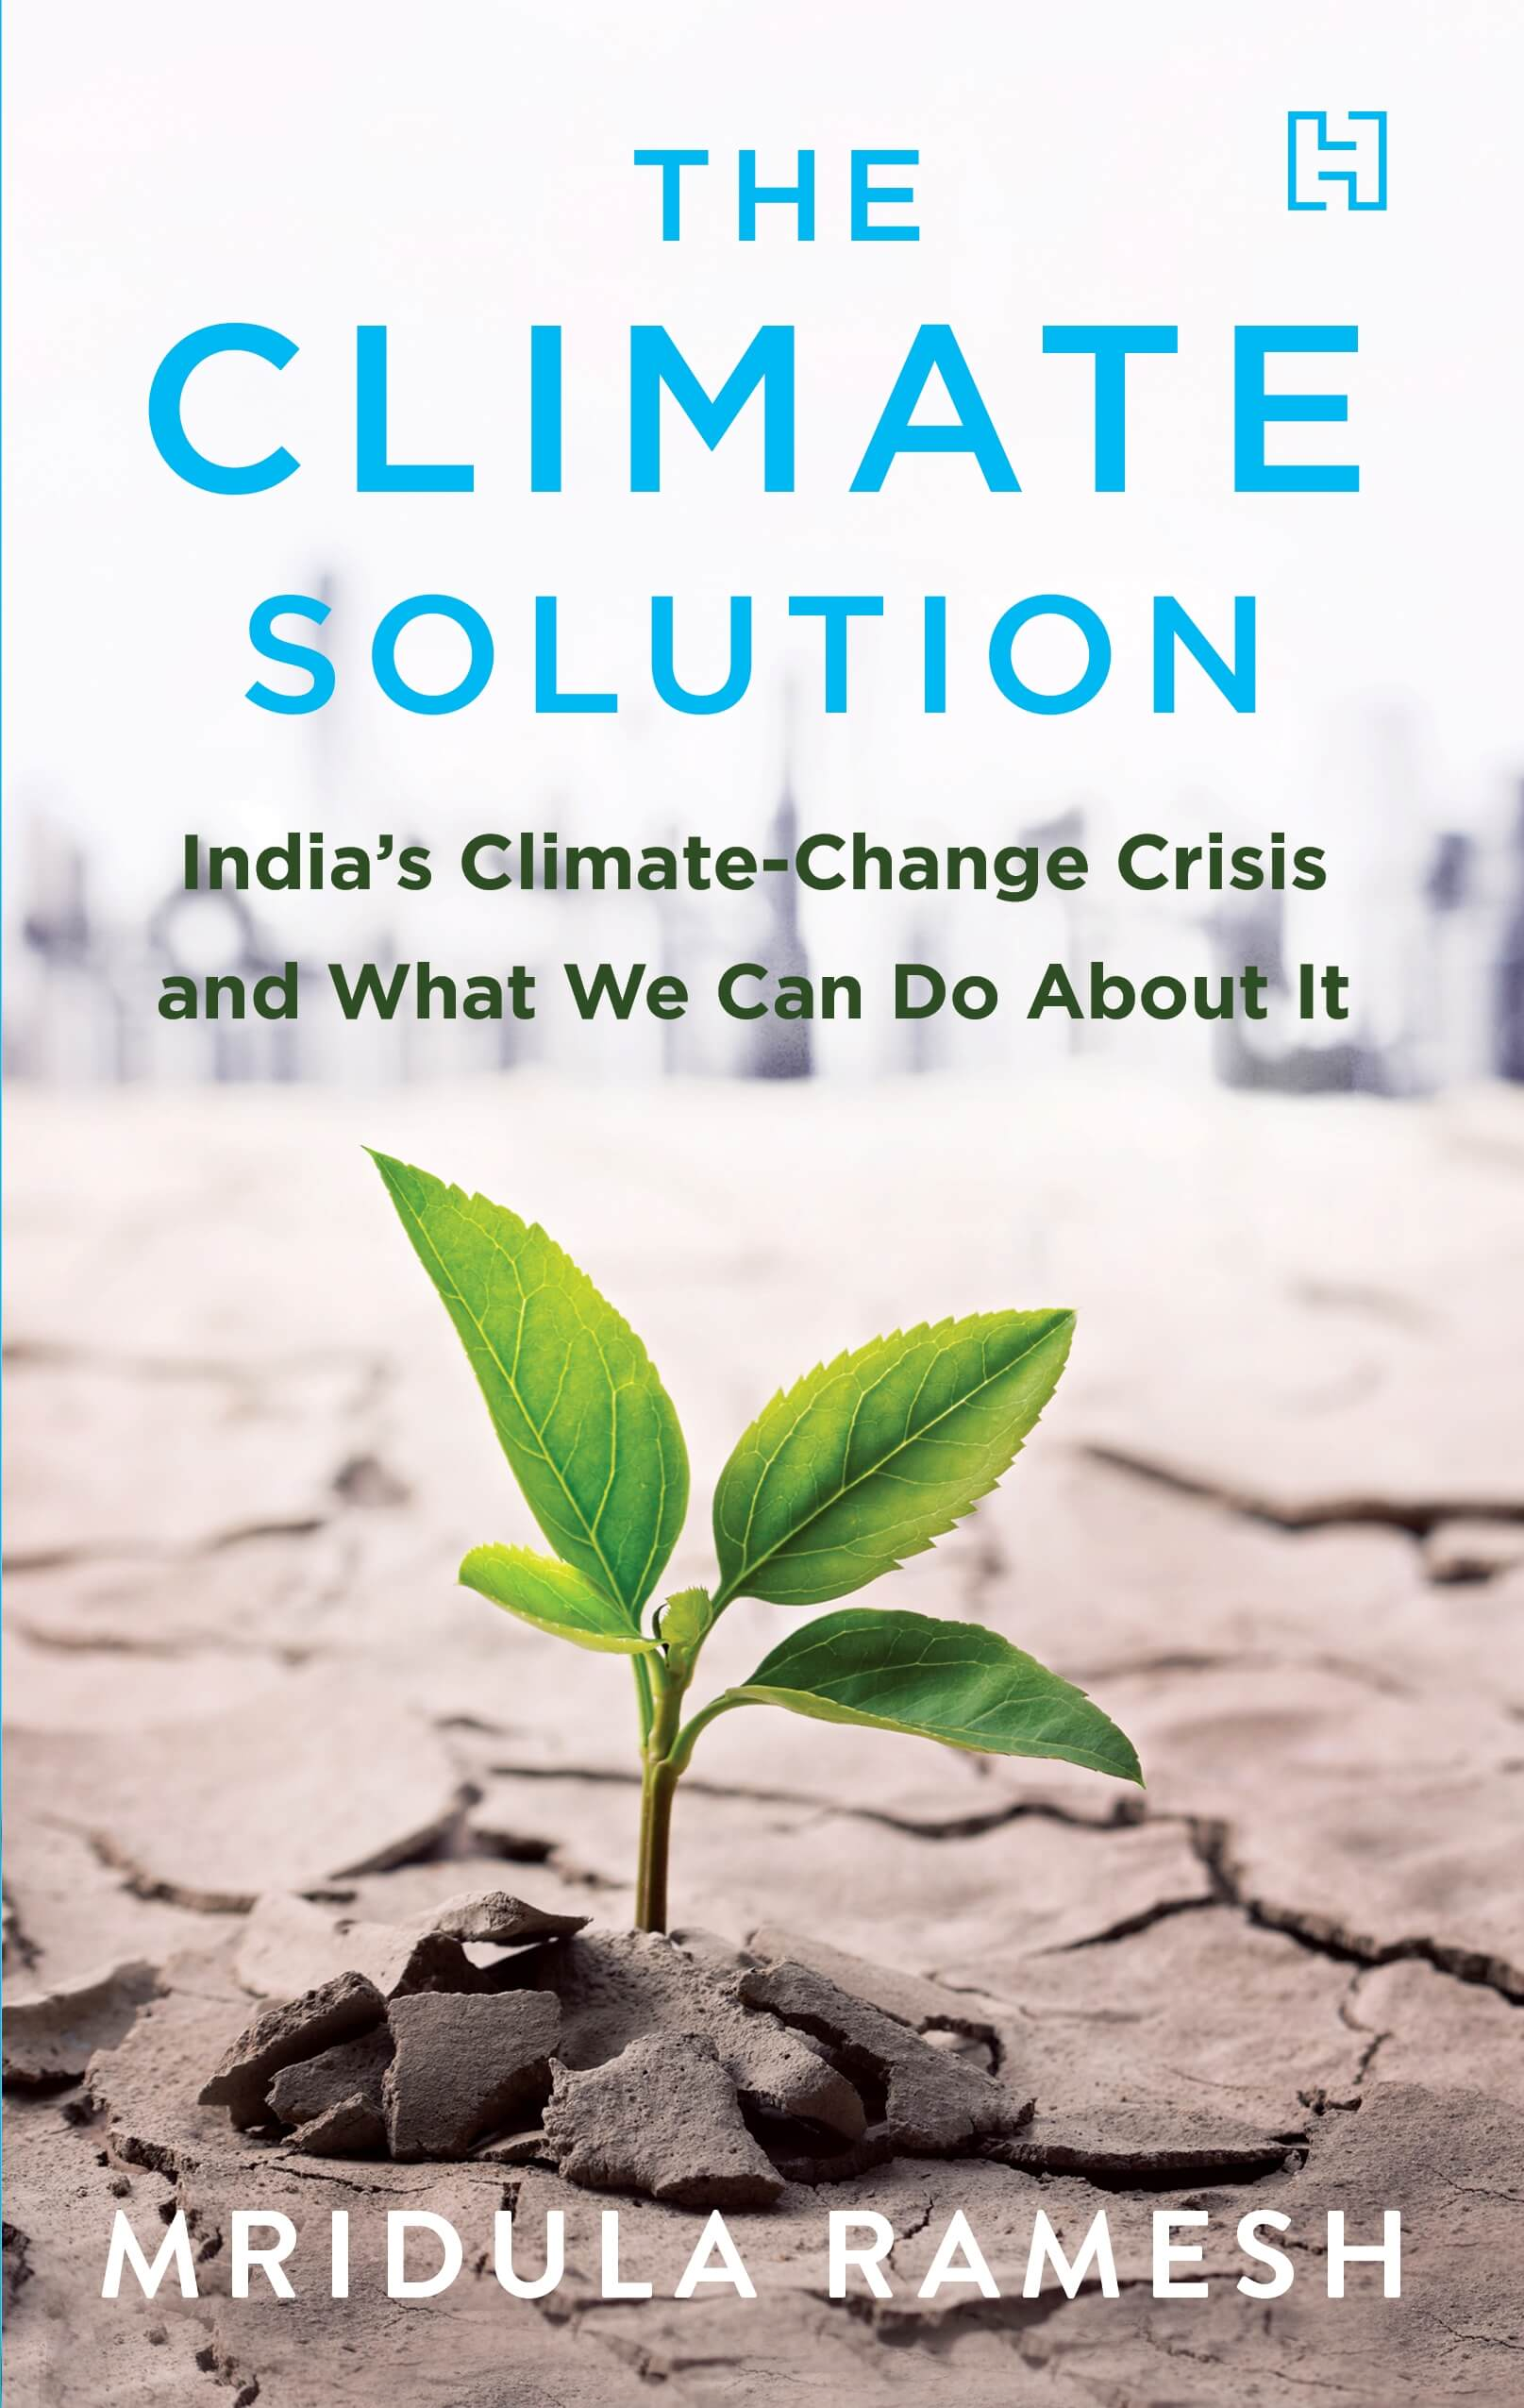 New book on environment shows the way forward